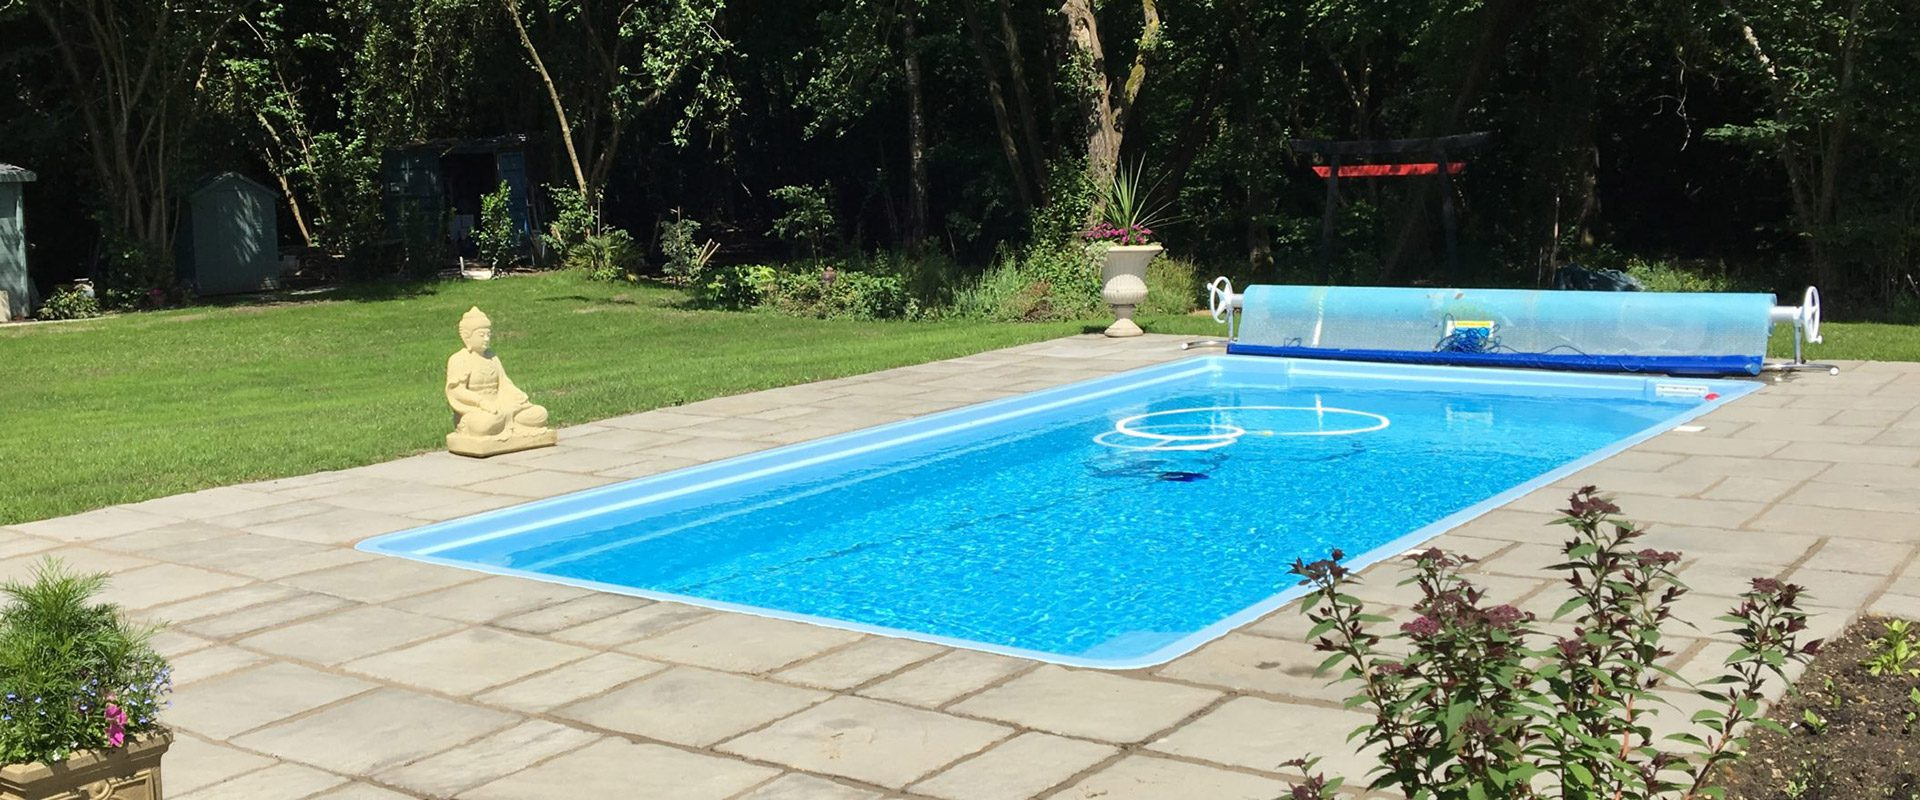 2020 fibreglass metallic pool specials